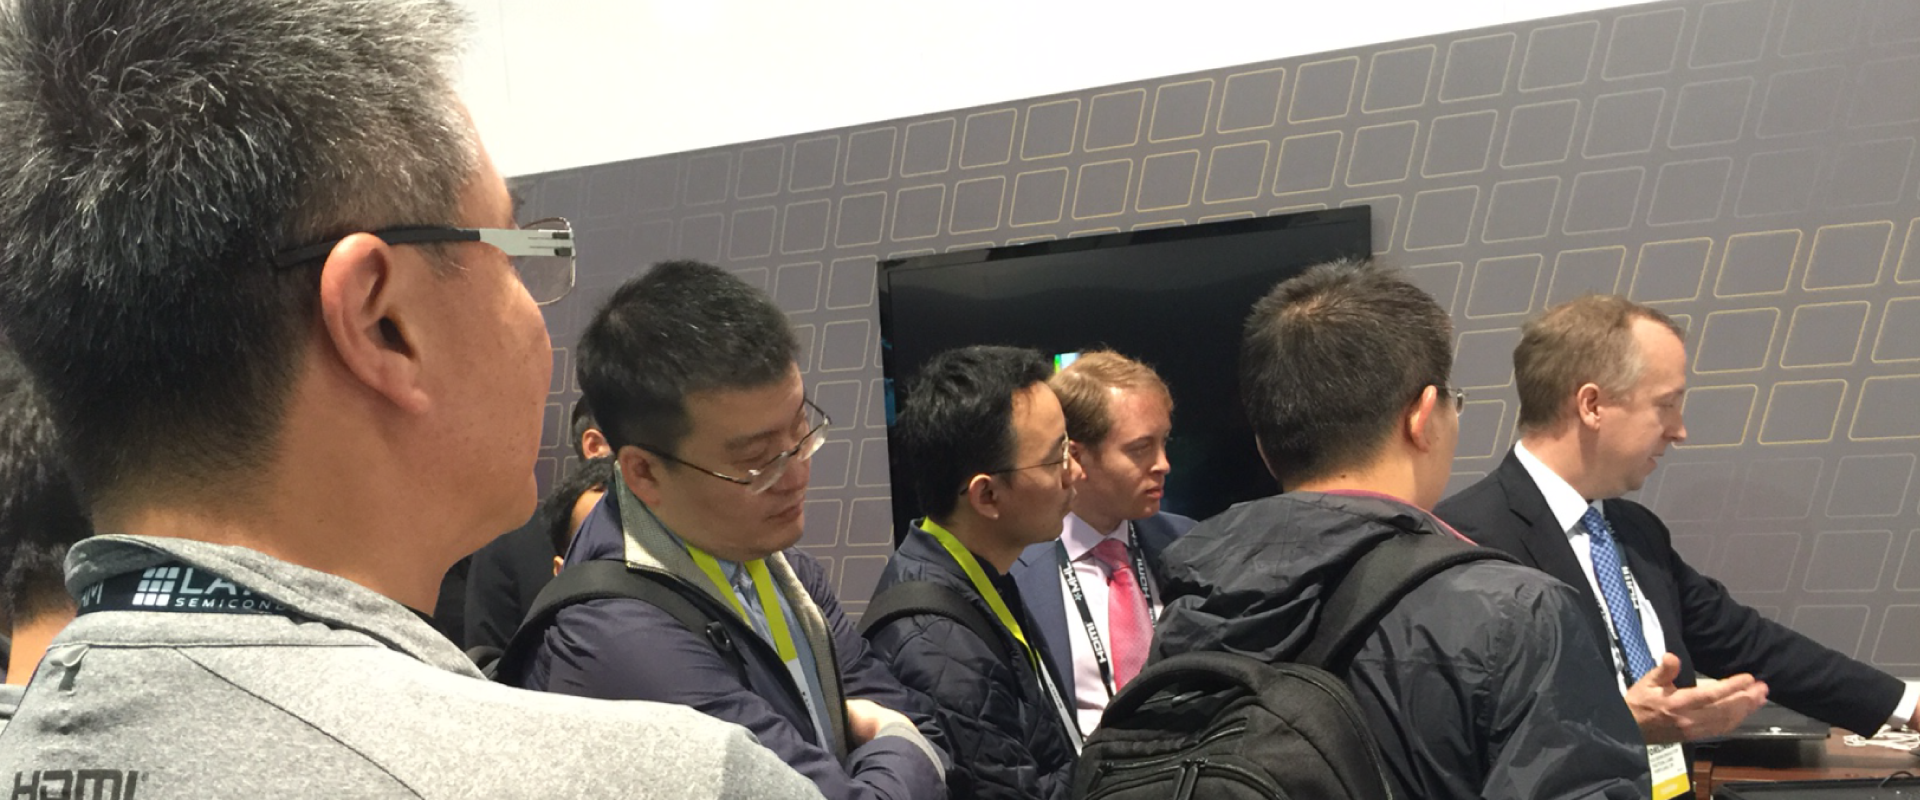 CES 2016: Lifting the Veil on Prism Sensing